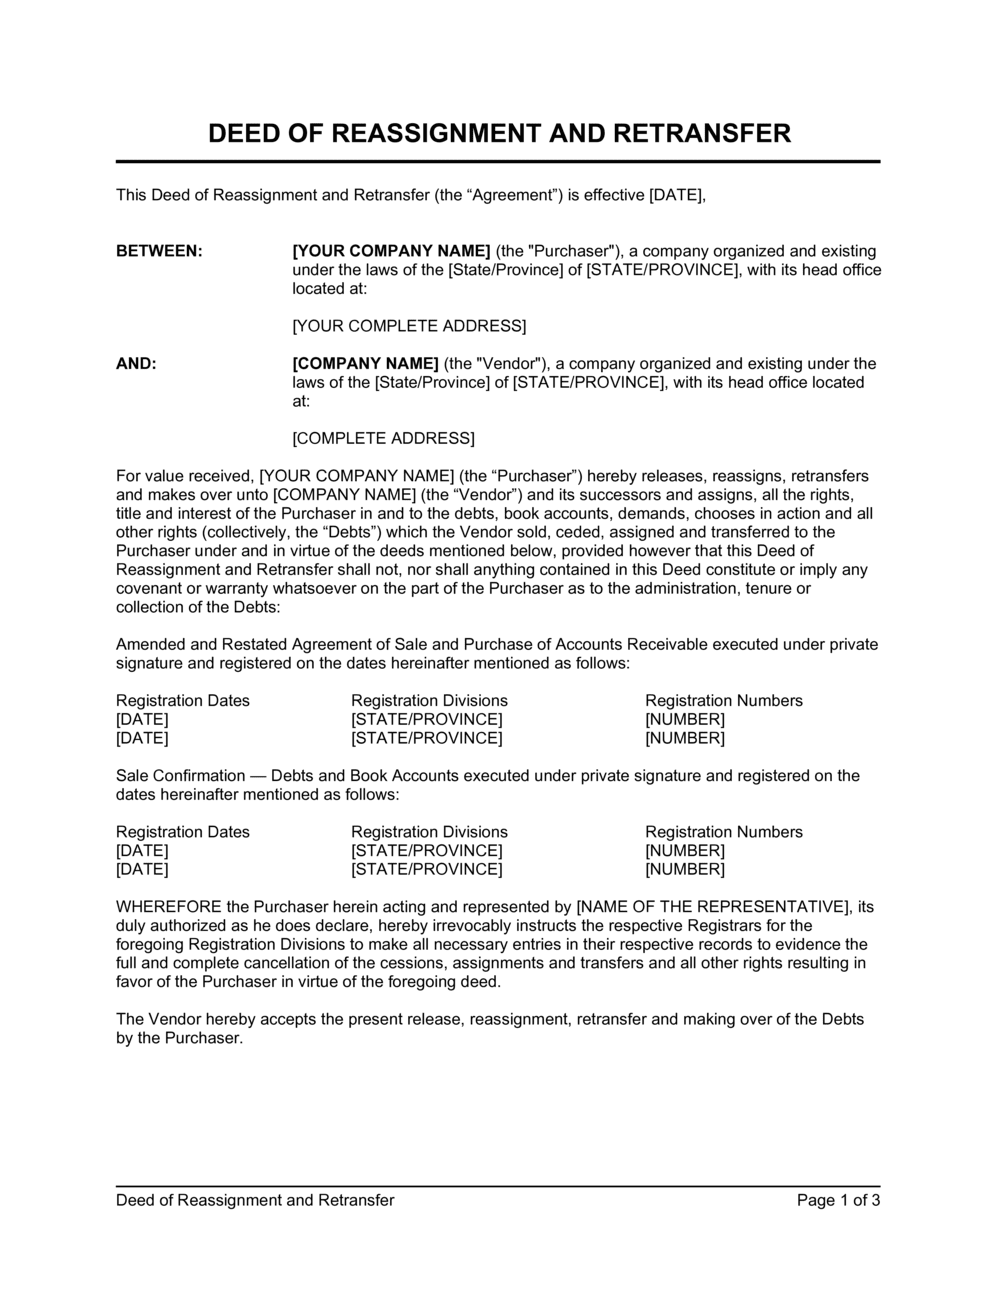 Business-in-a-Box's Deed of Reassignment and Retransfer Template